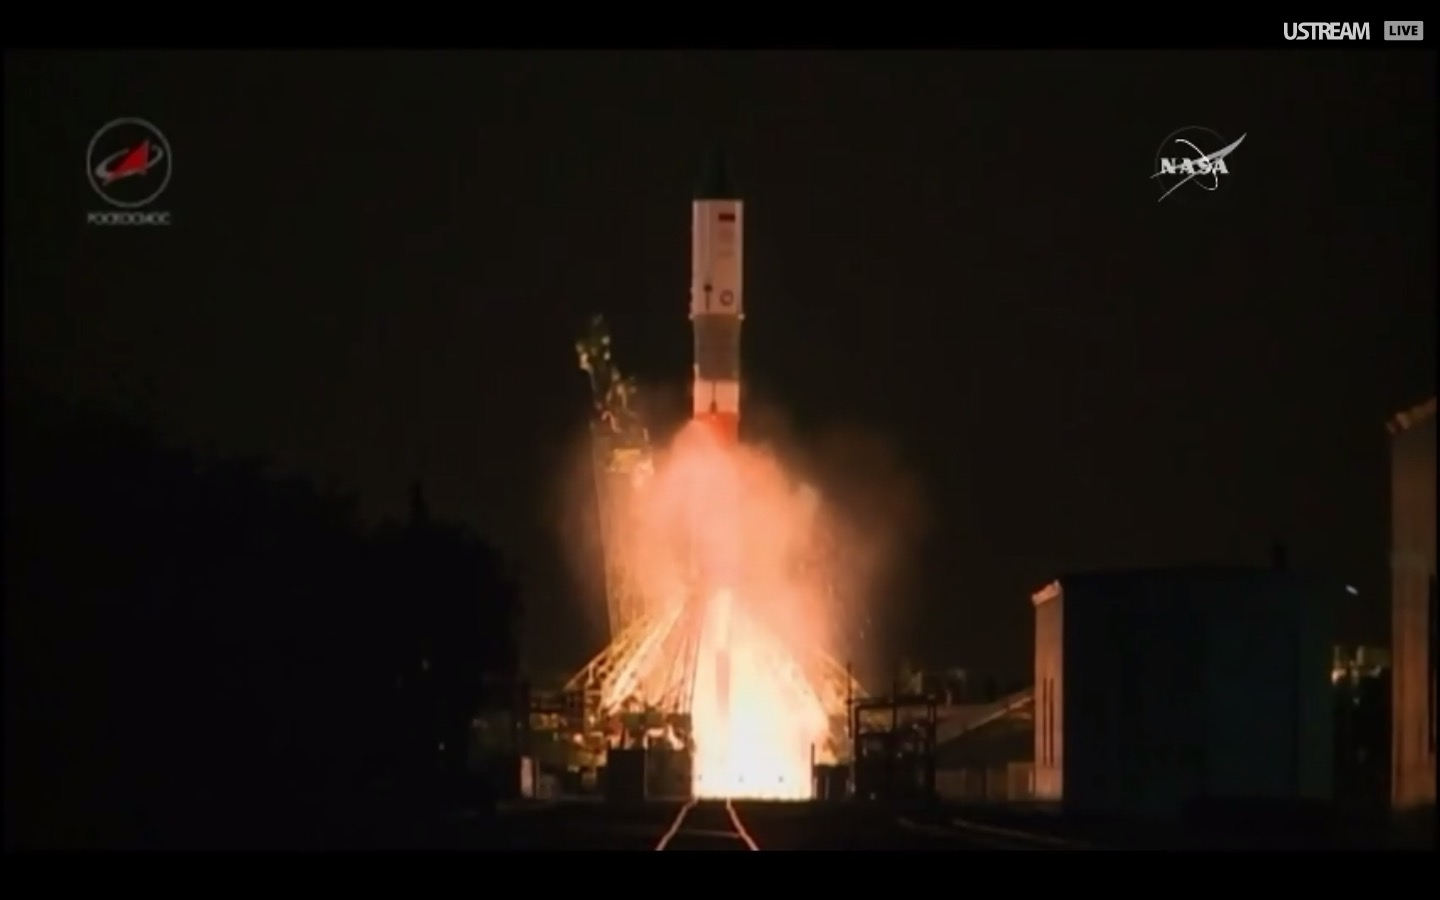 Russia Launches Robotic Supply Ship to International Space Station